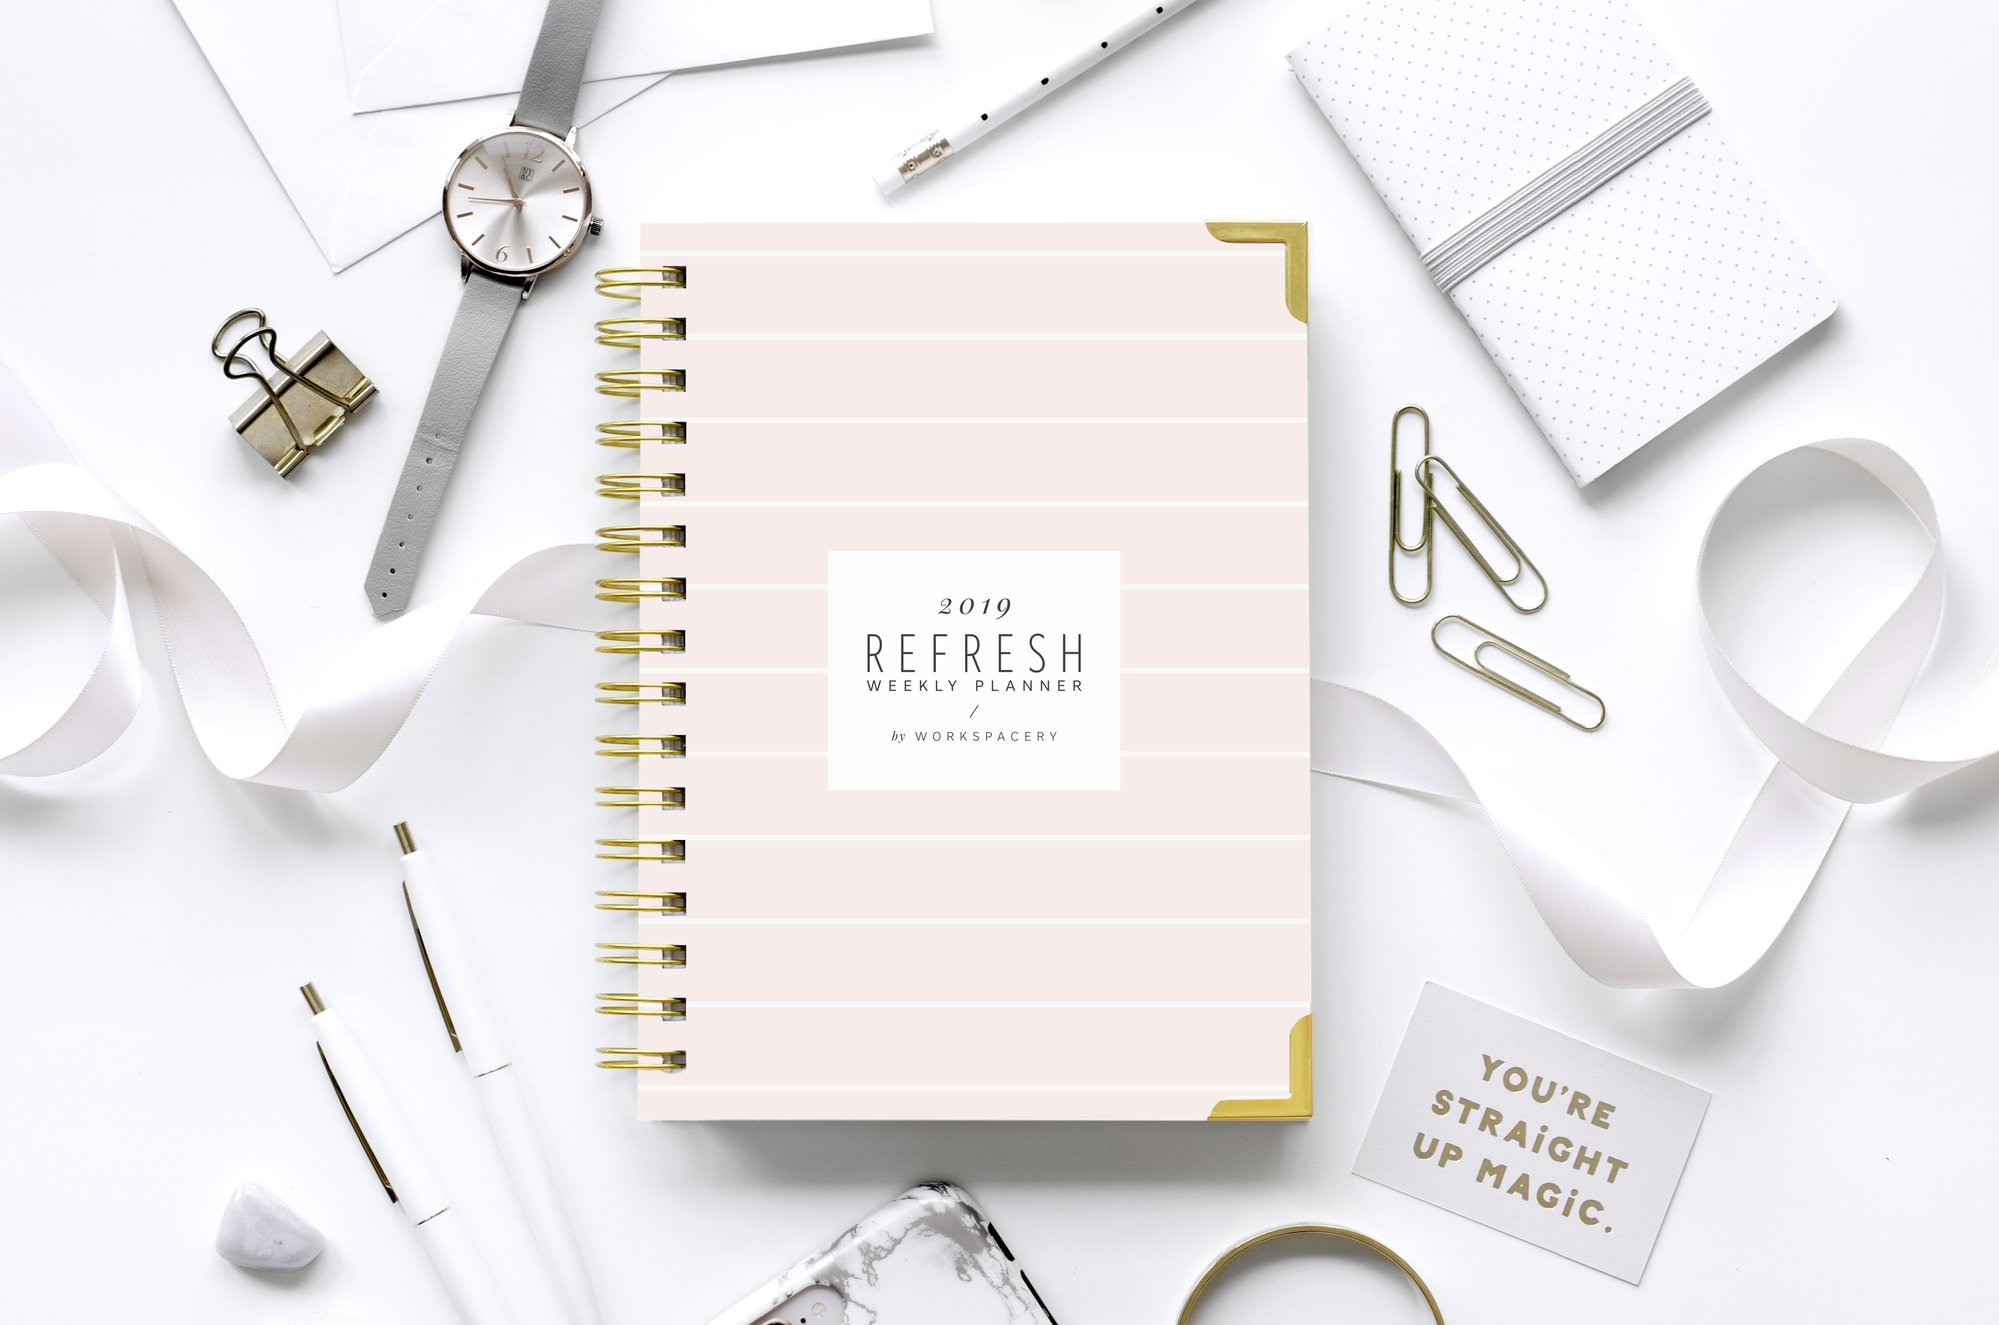 BSG is proud to be an affiliate for the 2019 Refresh Weekly Planner by Workspacery. - Minimally designed and featuring the dual weekly layout loved by all since day one, the 2019 Refresh Weekly Planner is taking your productivity and planning to the next level this year with intentional upgrades that make all the difference. Shop through the below link and a portion of your purchase will come back to BSG!Image via Workspacery.